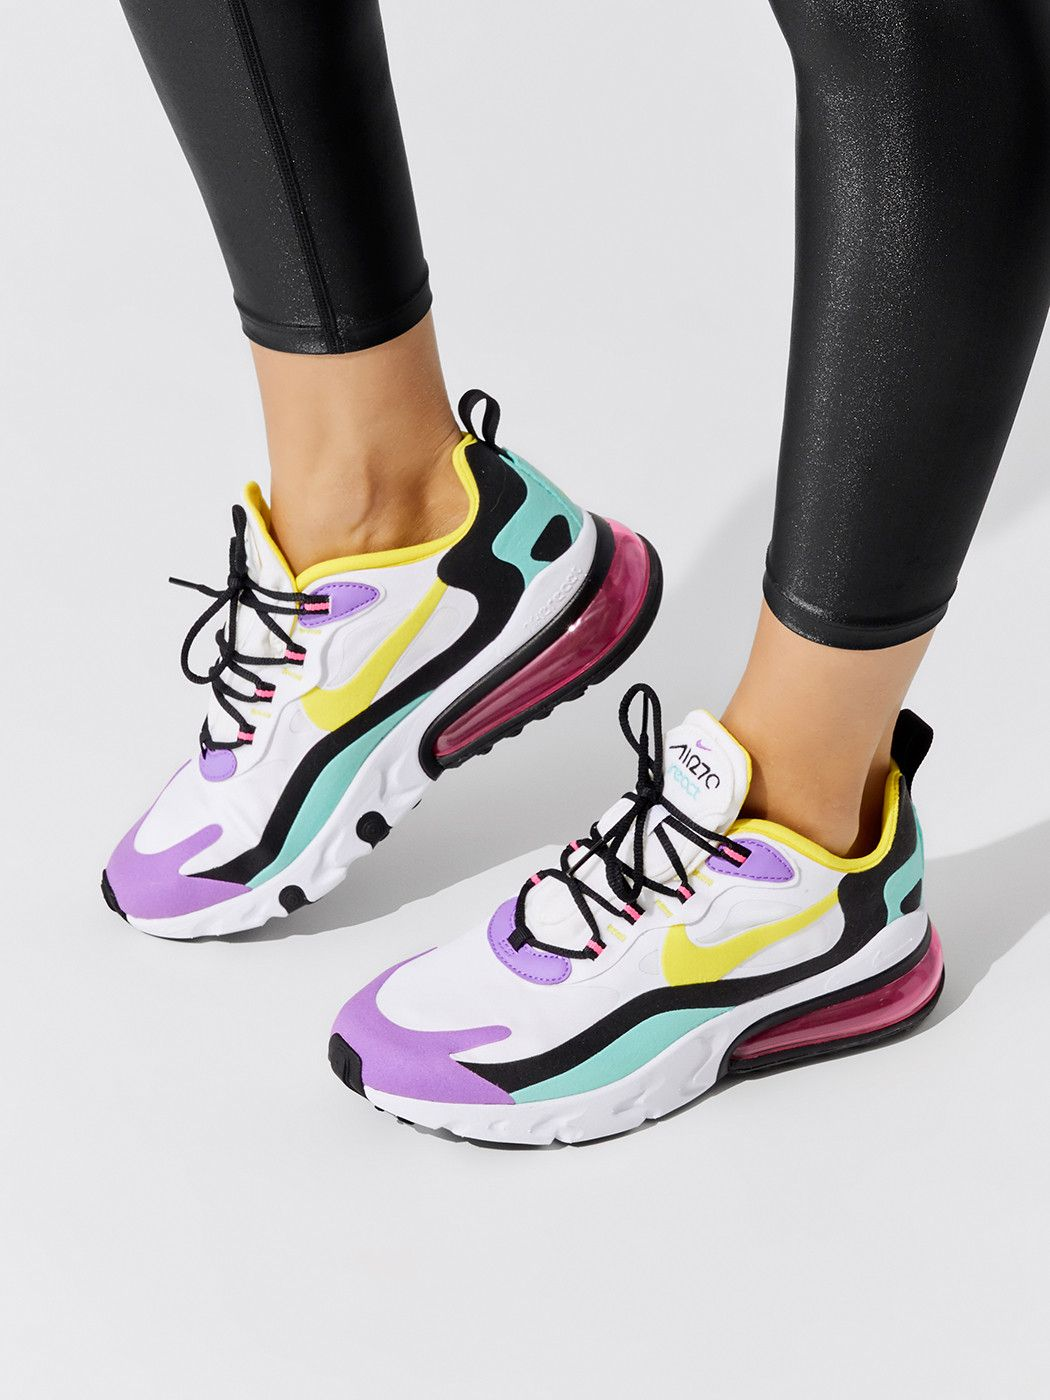 Air Max 270 React In White Dynamic Yellow Black Brt Violet Aurora